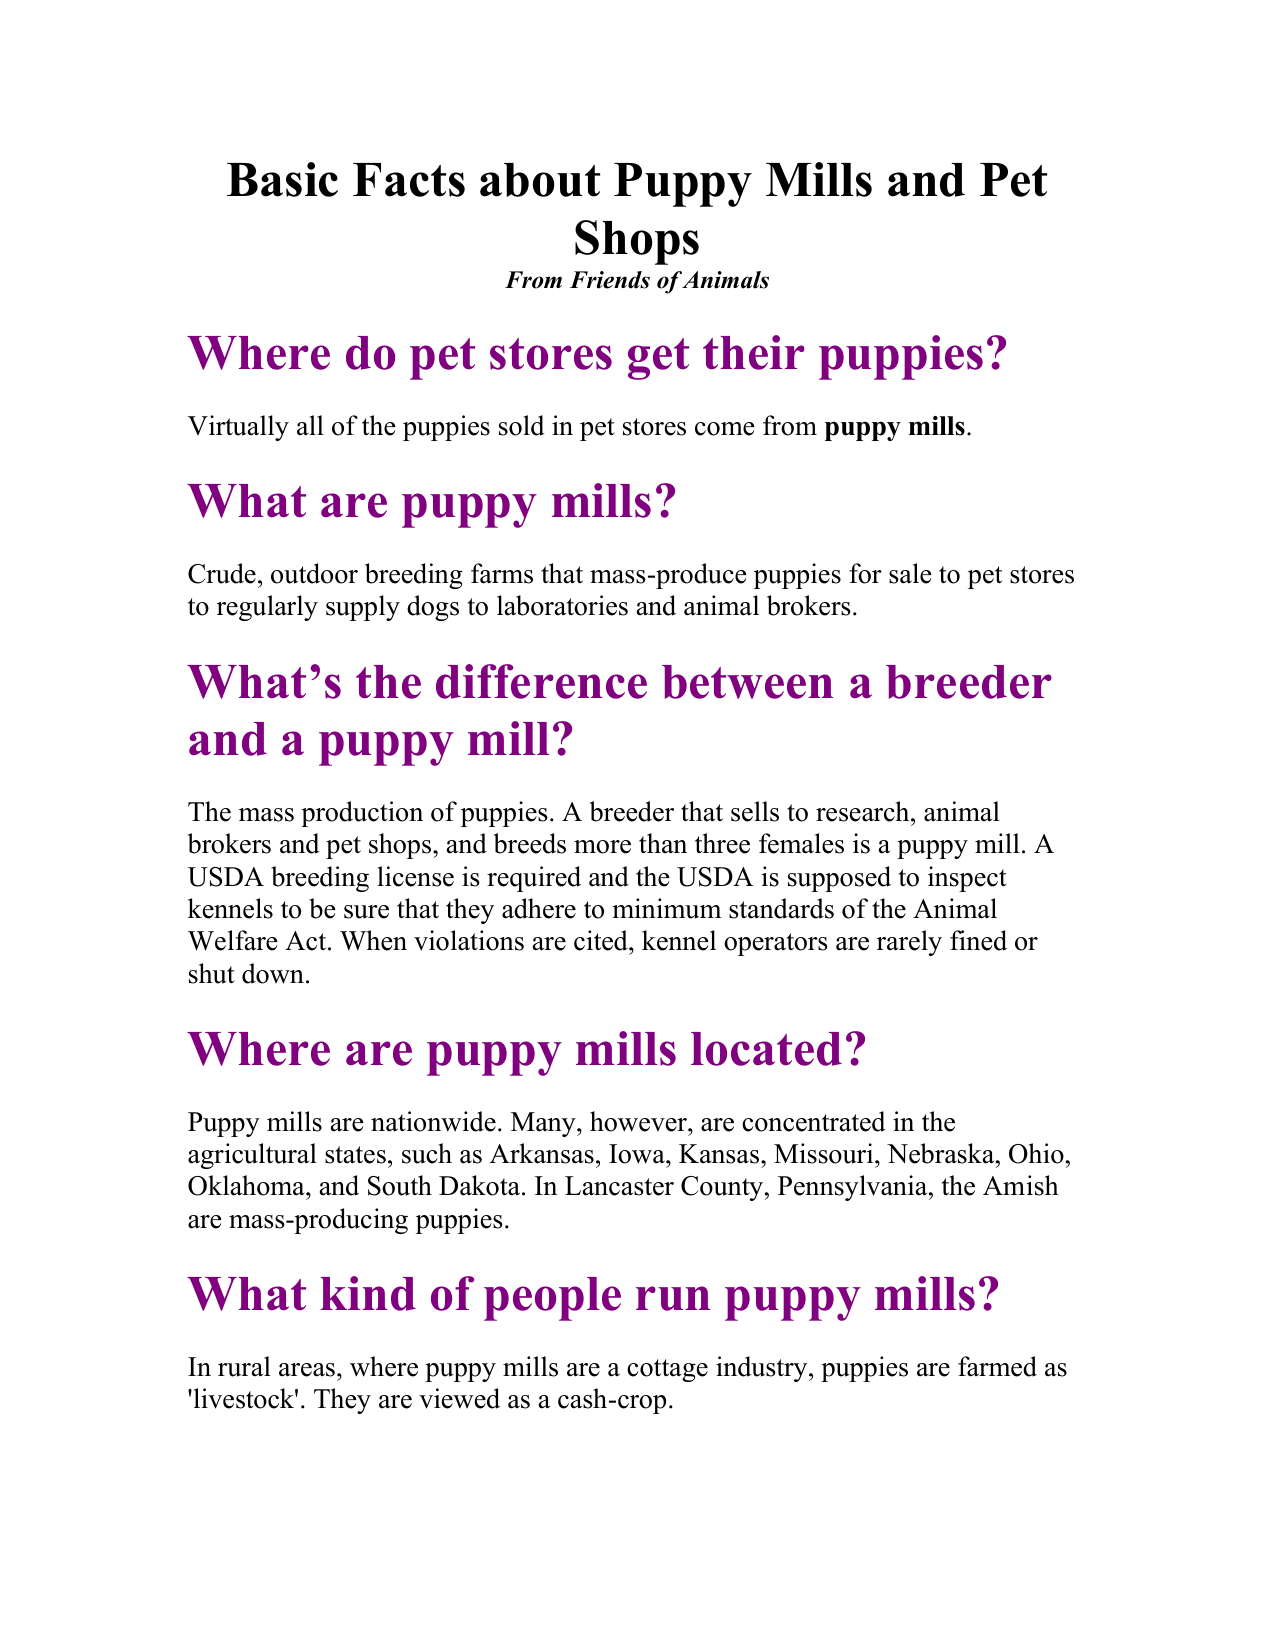 Basic Facts about Puppy Mills and Pet Shops From